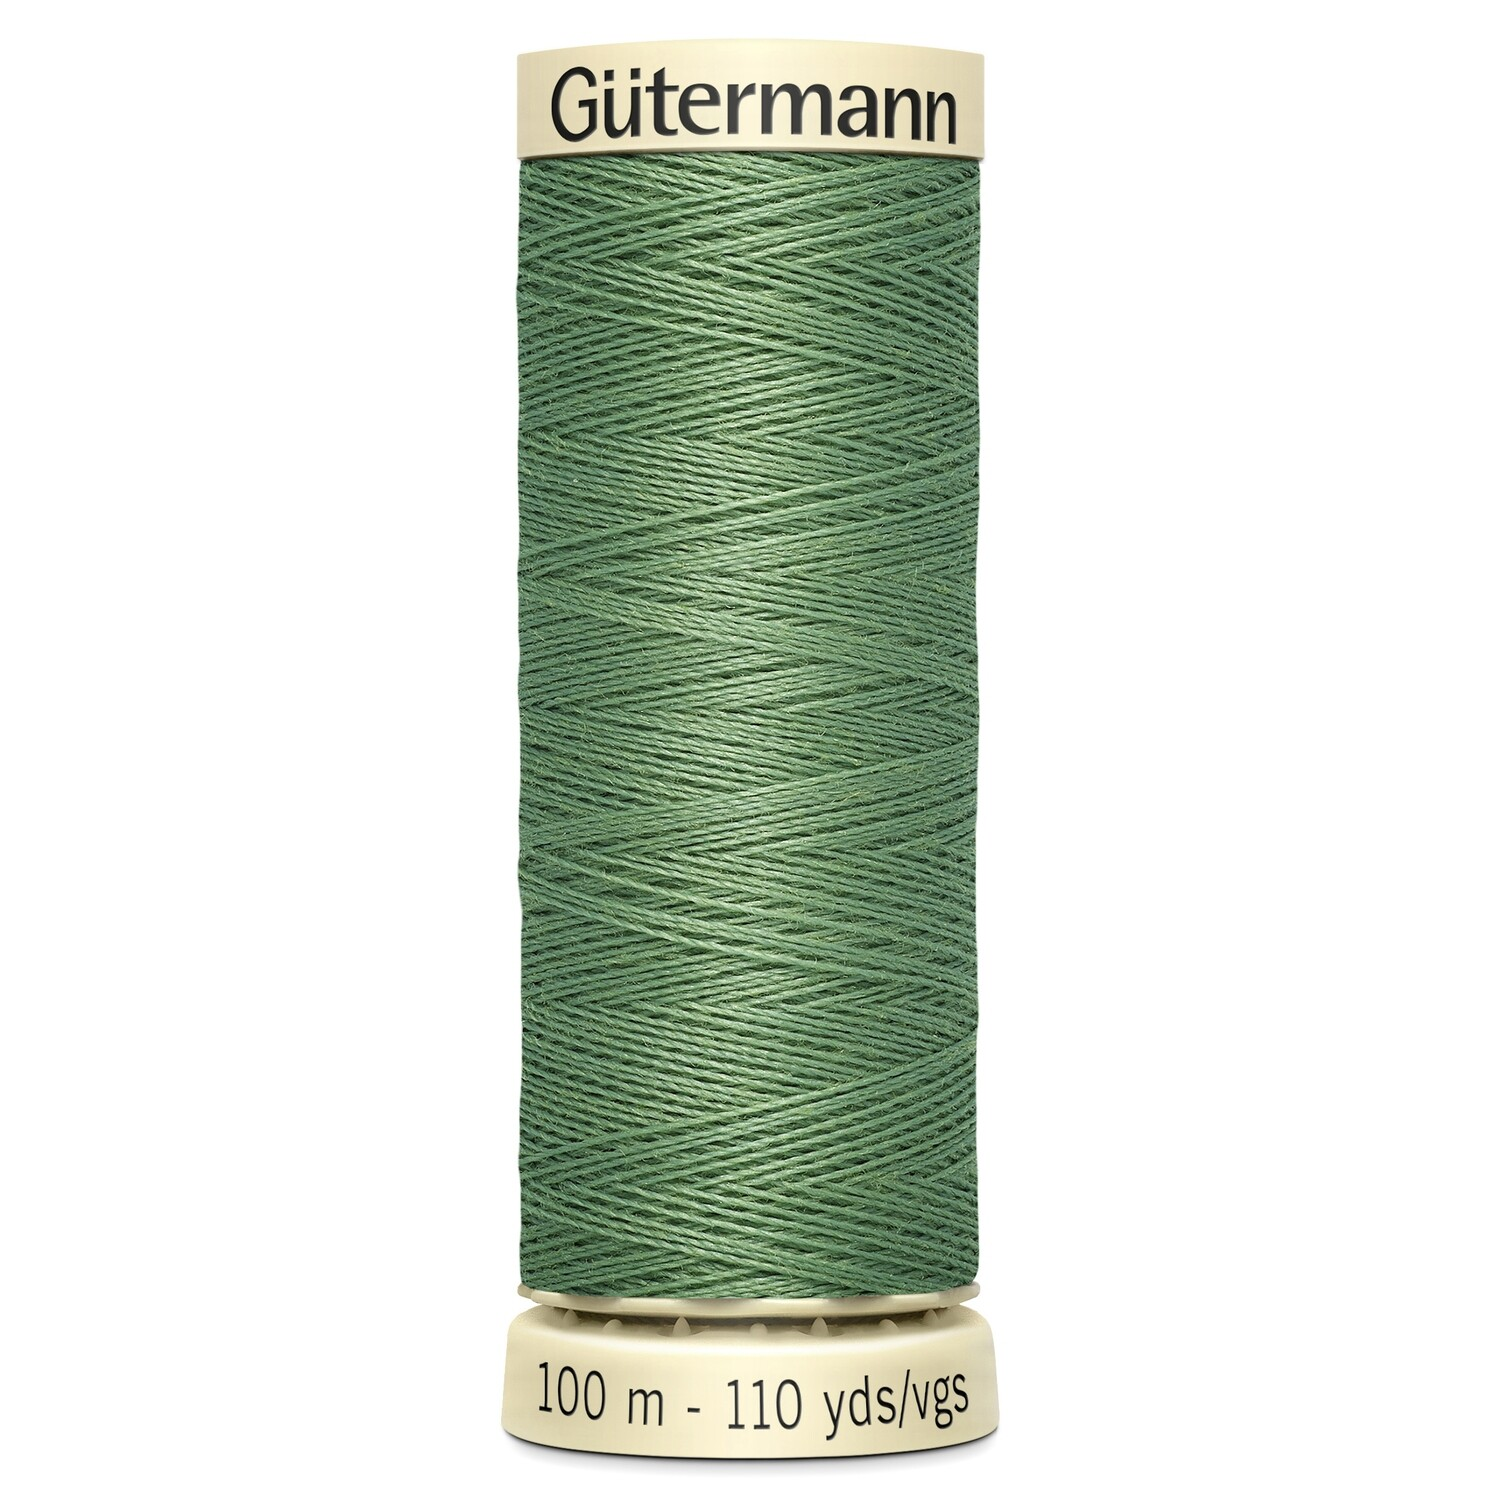 Gutermann Sew-All thread 824